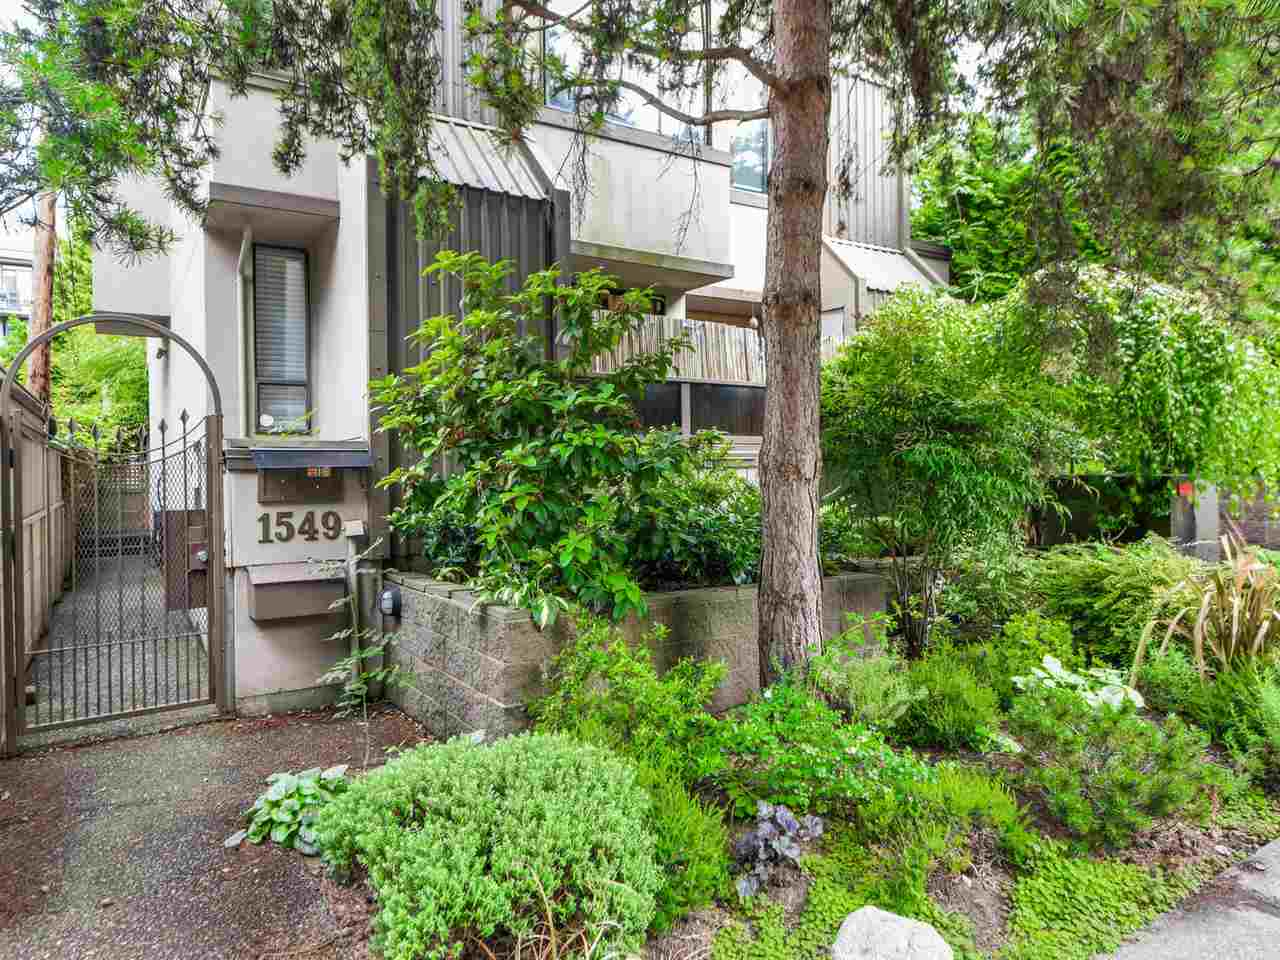 Main Photo: 3 1549 HARO STREET in Vancouver: West End VW Townhouse for sale (Vancouver West)  : MLS®# R2089499